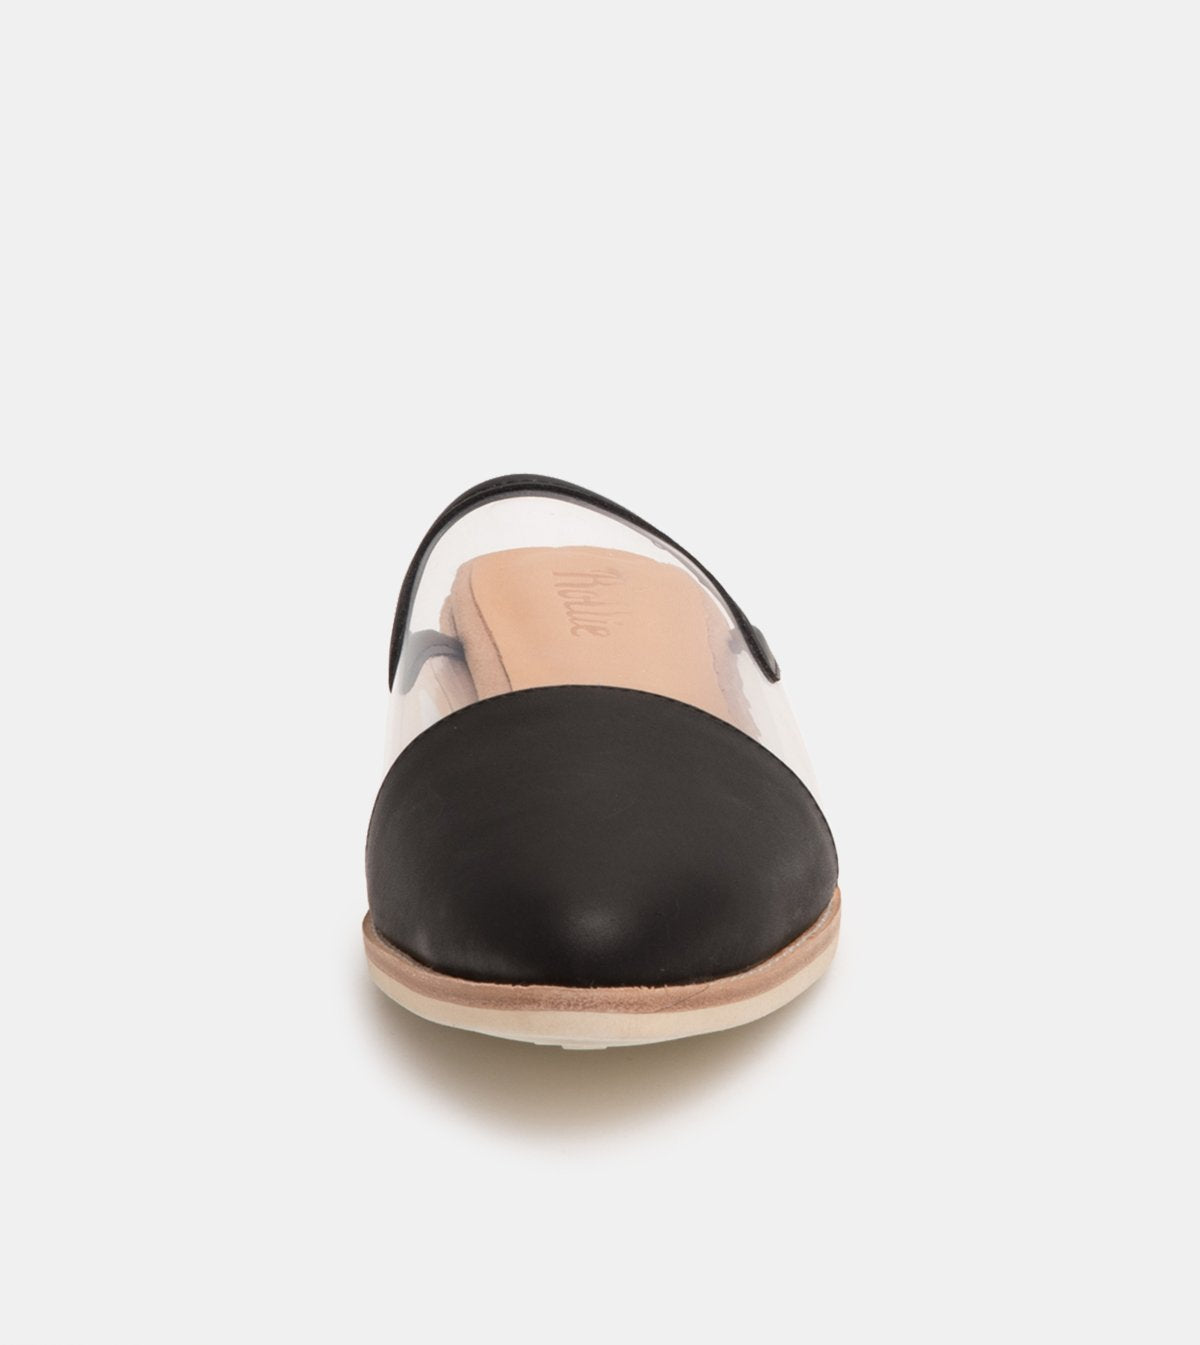 Rollie Madison Mule Clear/Black Toe Cap Shoes